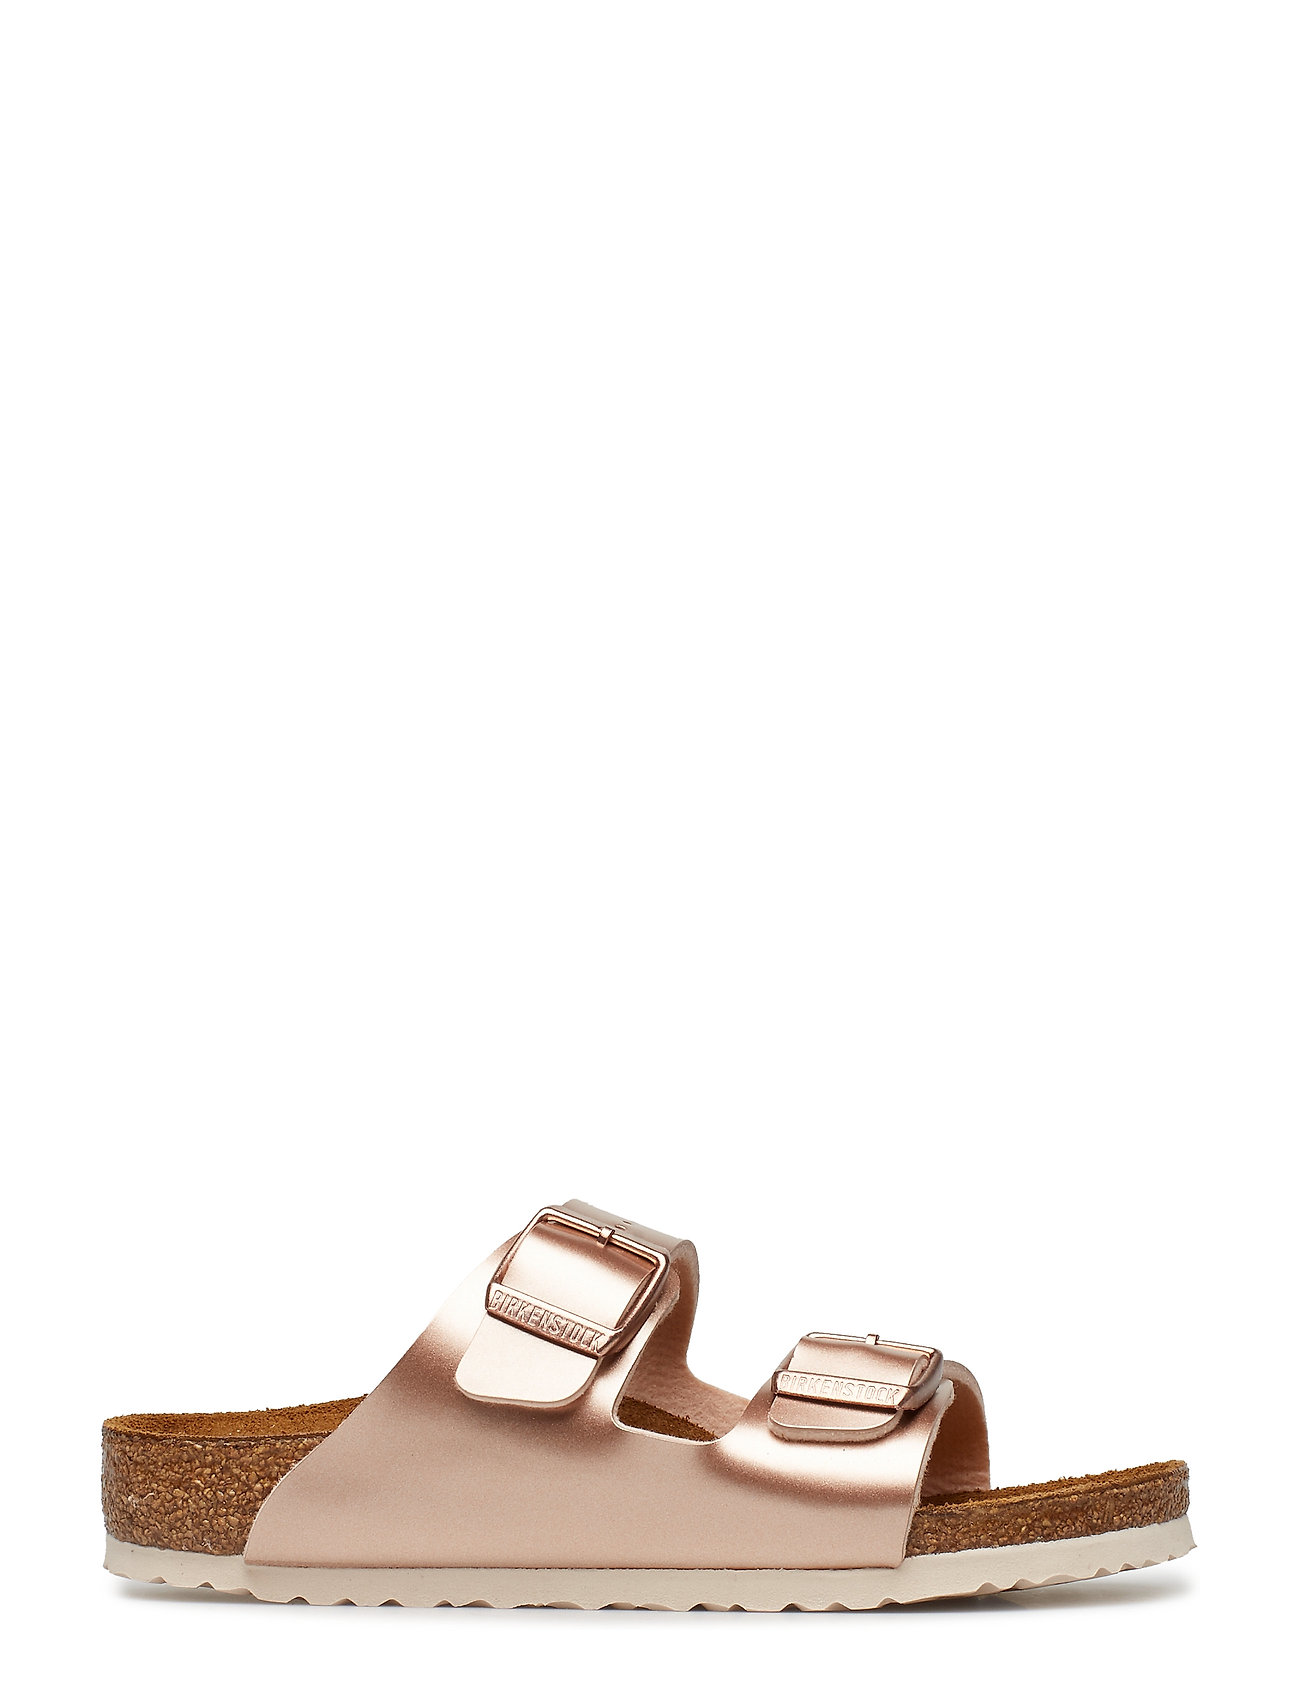 9741e2e418e9 Birkenstock flip flops – Arizona til børn i ELECTRIC METALLIC COPPER ...